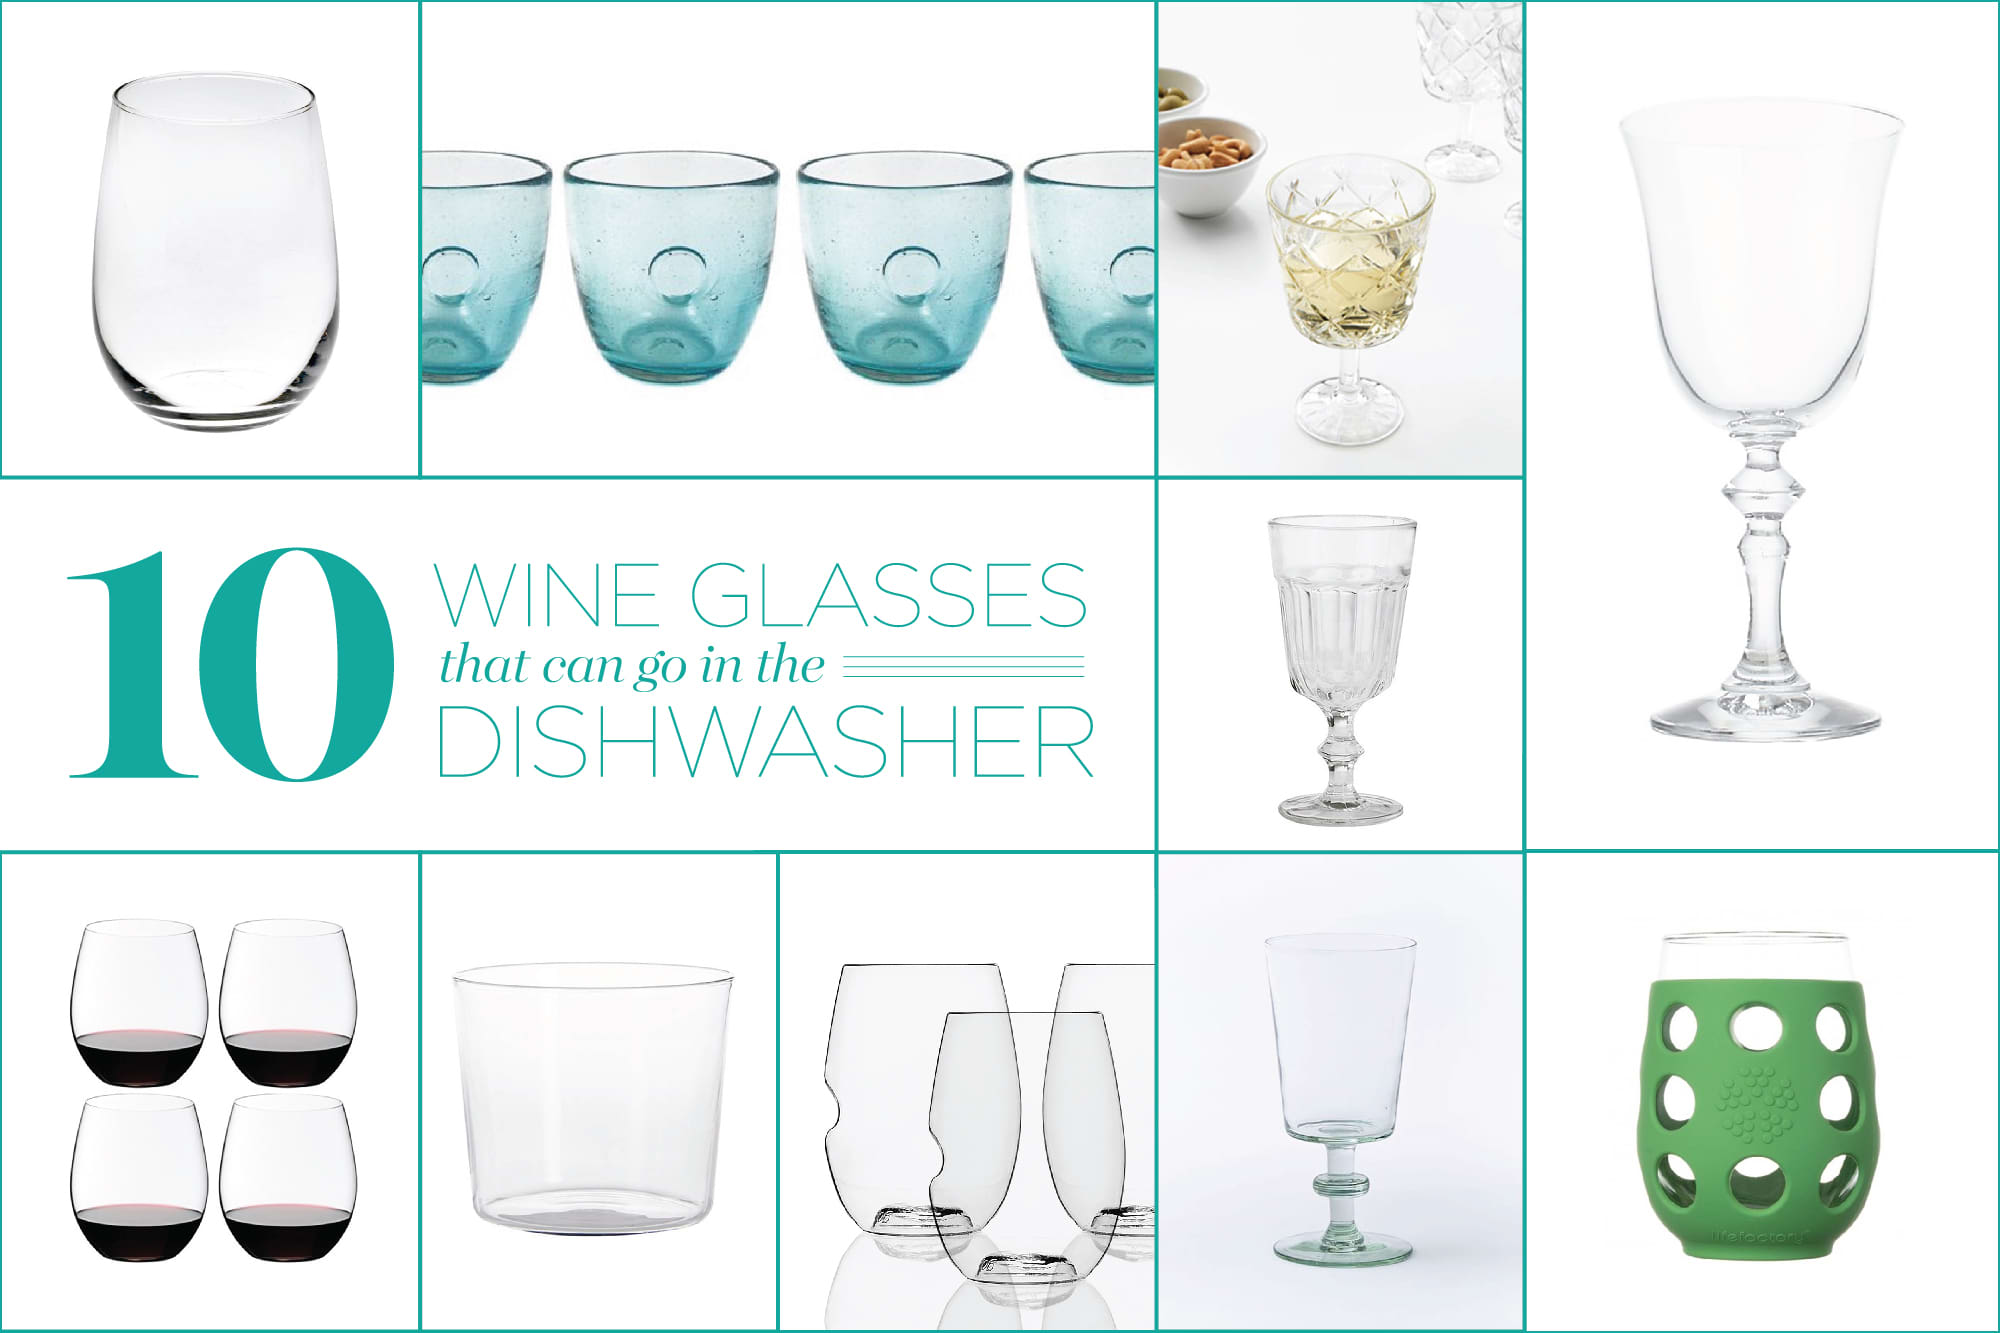 10 Wine Glasses That Can Go in the Dishwasher: gallery image 1